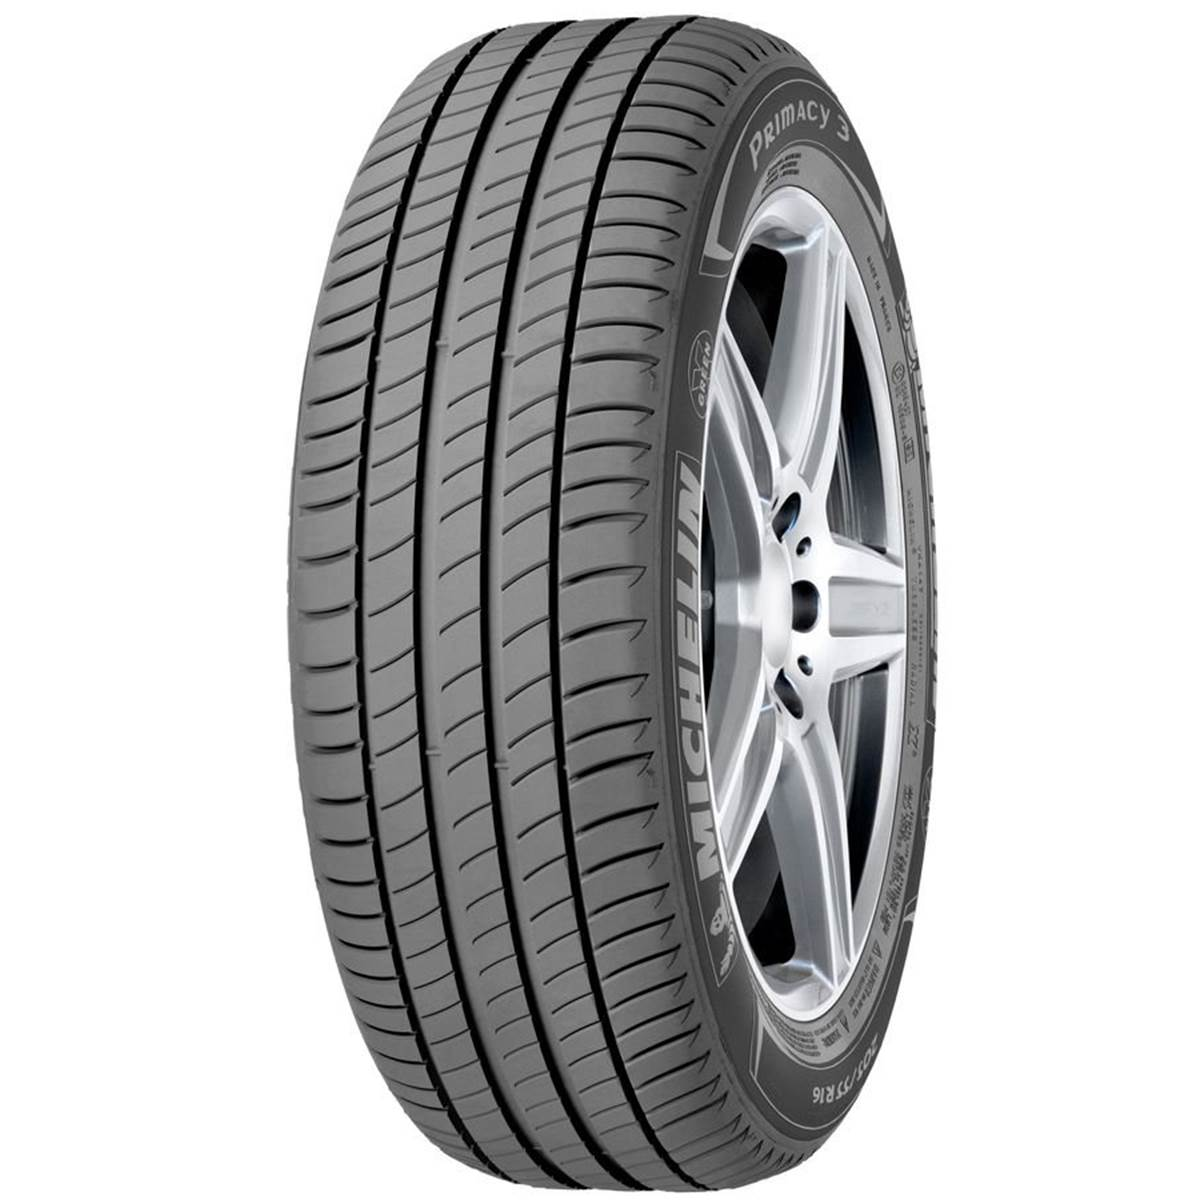 Pneu Michelin 225/45R17 91V Primacy 3